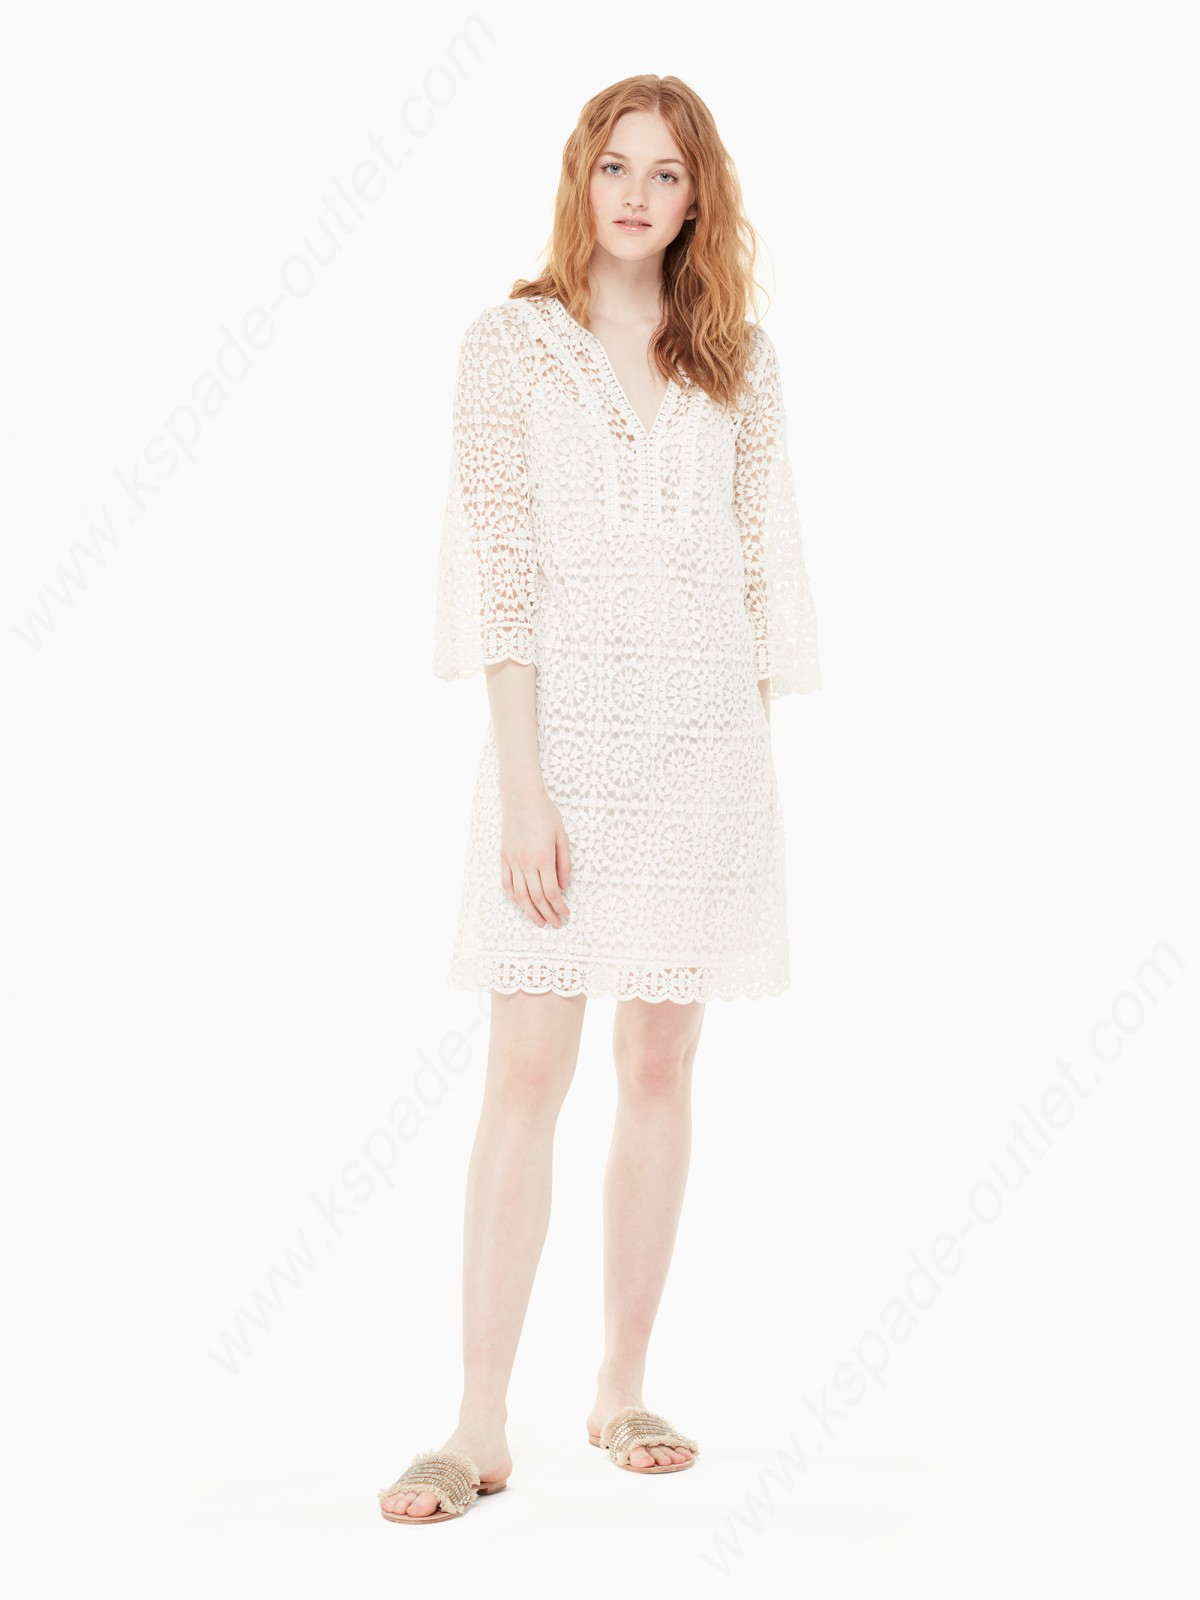 Kate Spade Womens Clothing Crochet Lace Dress - -0